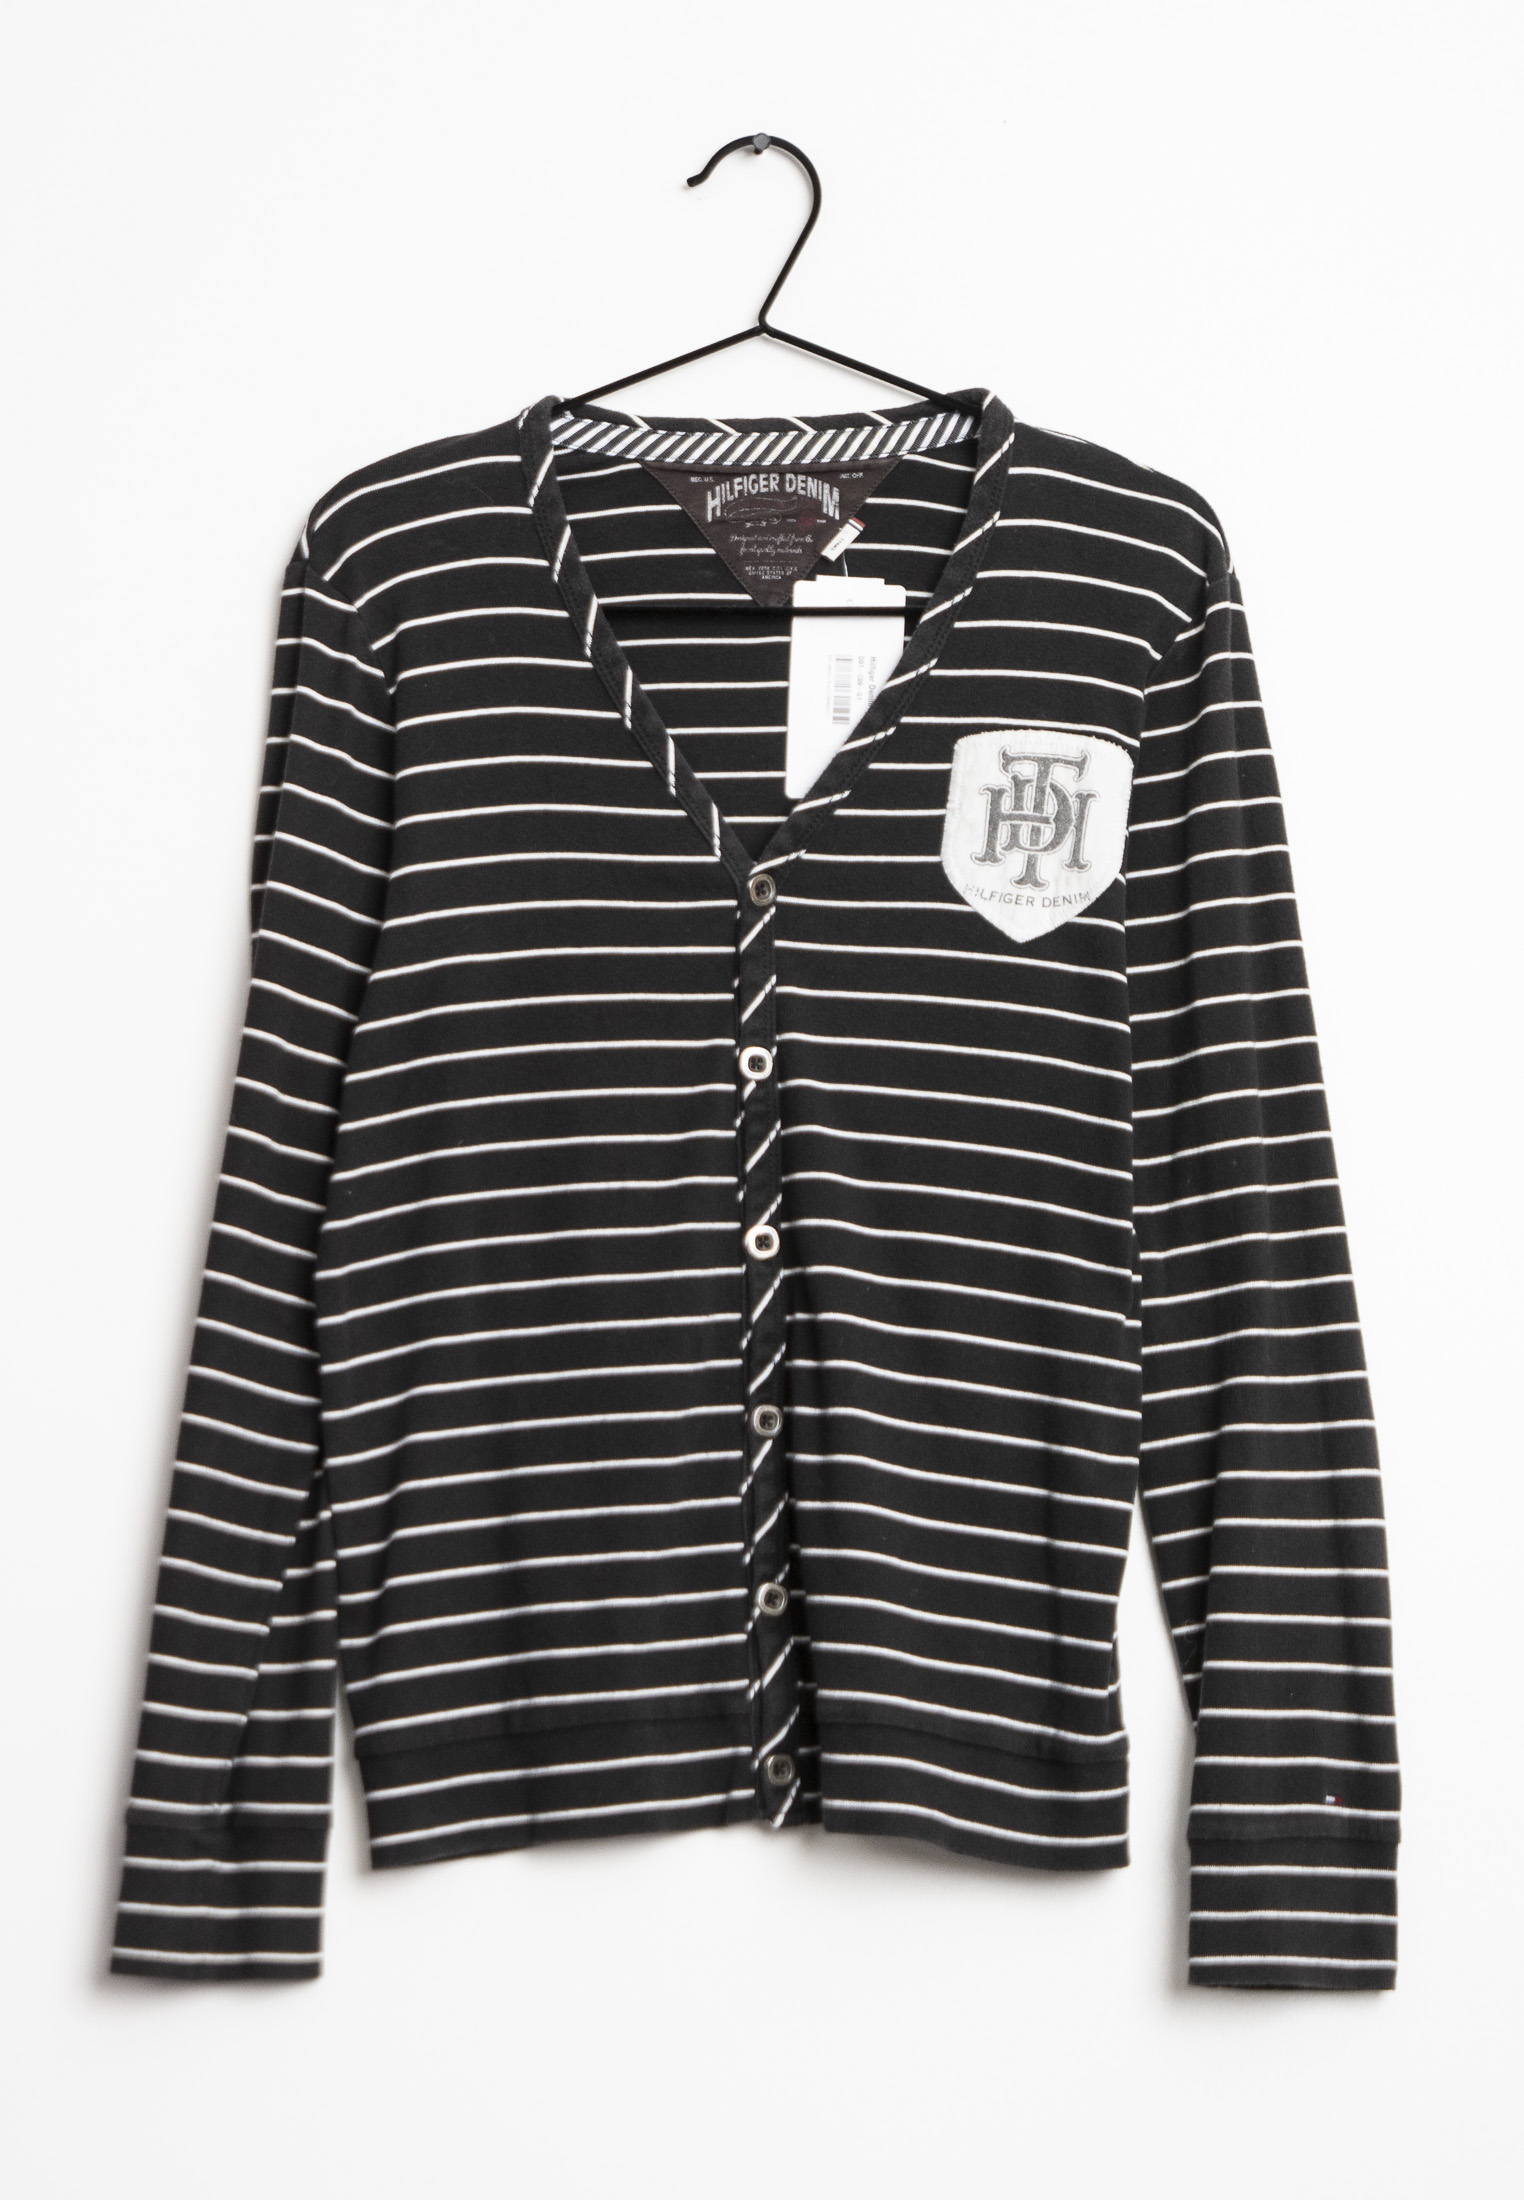 Hilfiger Denim cardigan, sort, S